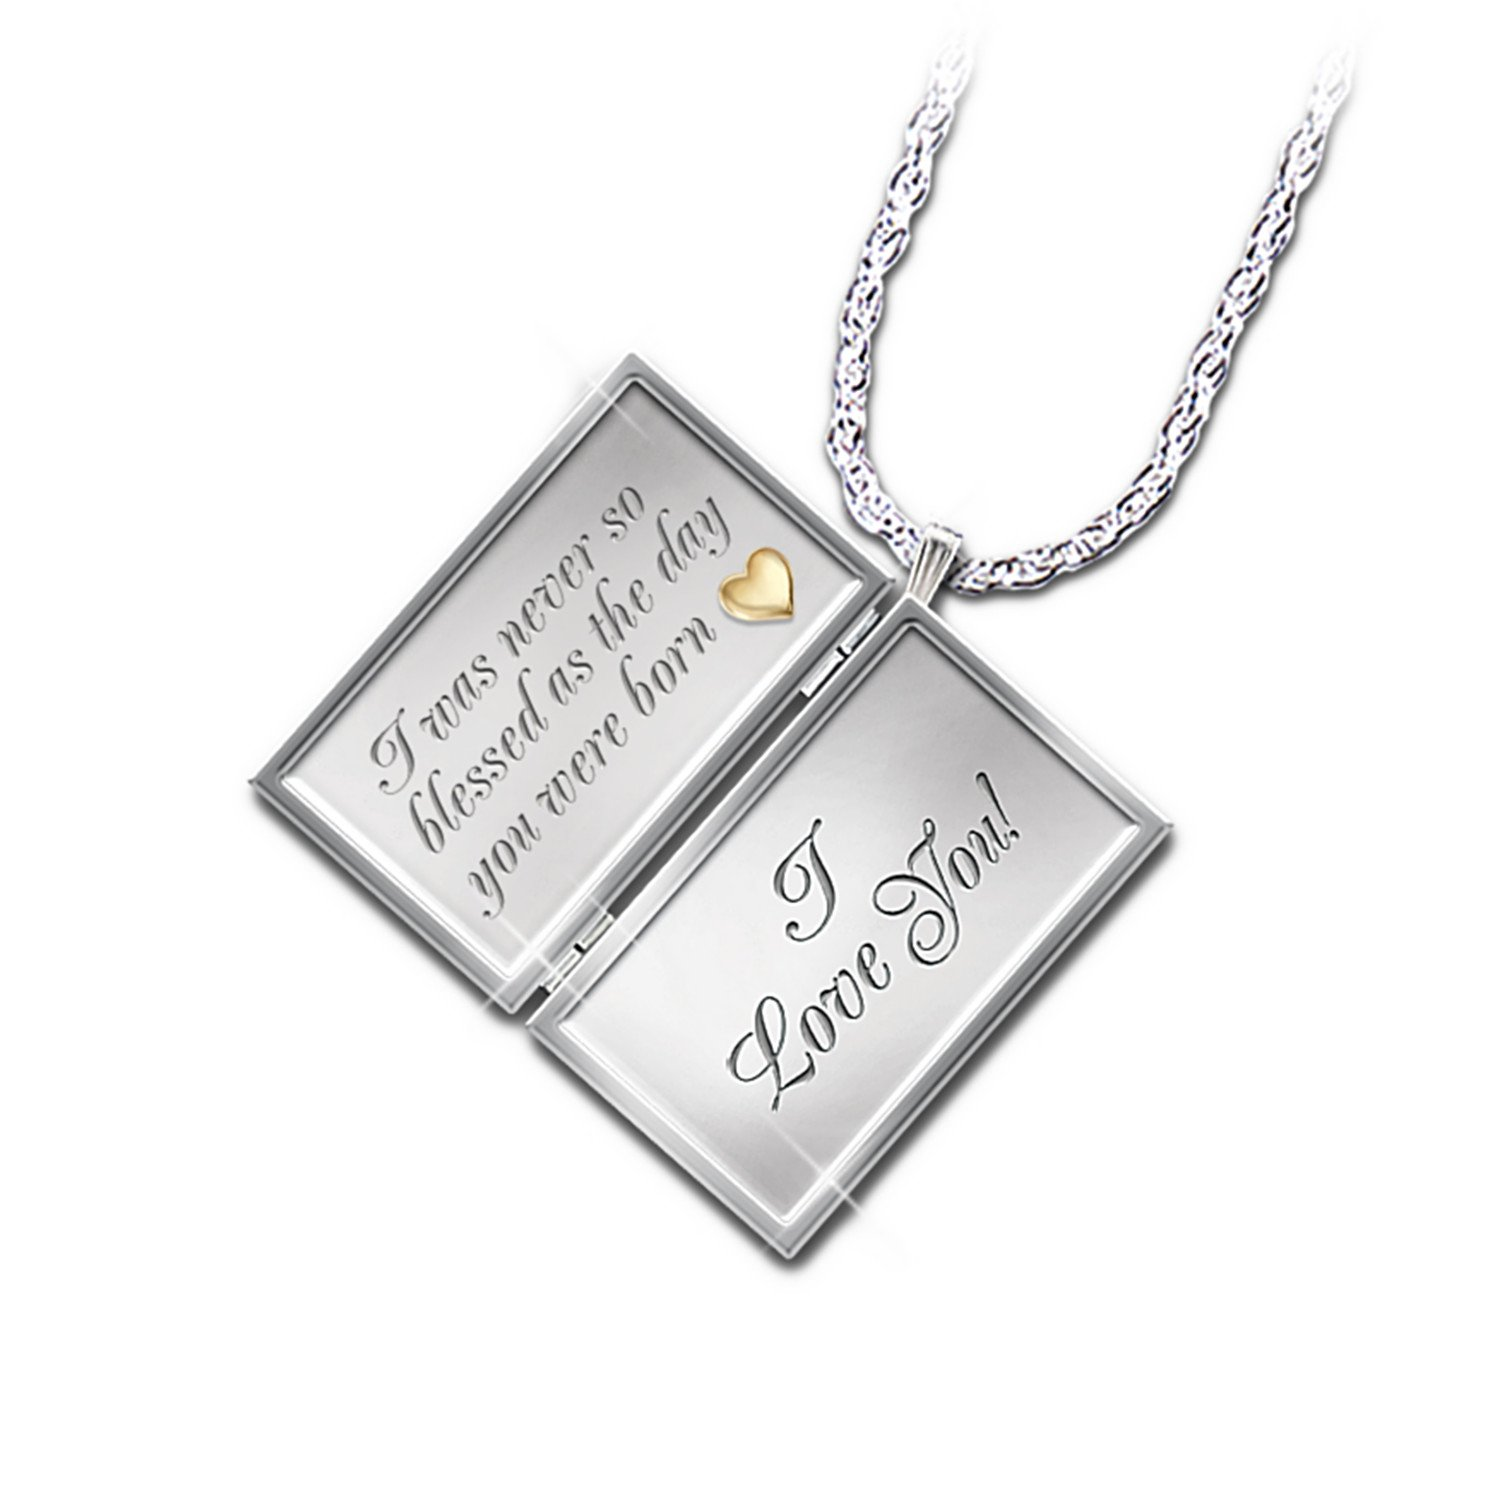 Dear Daughter Letter Of Love Engraved Diamond Locket Necklace by The Bradford Exchange